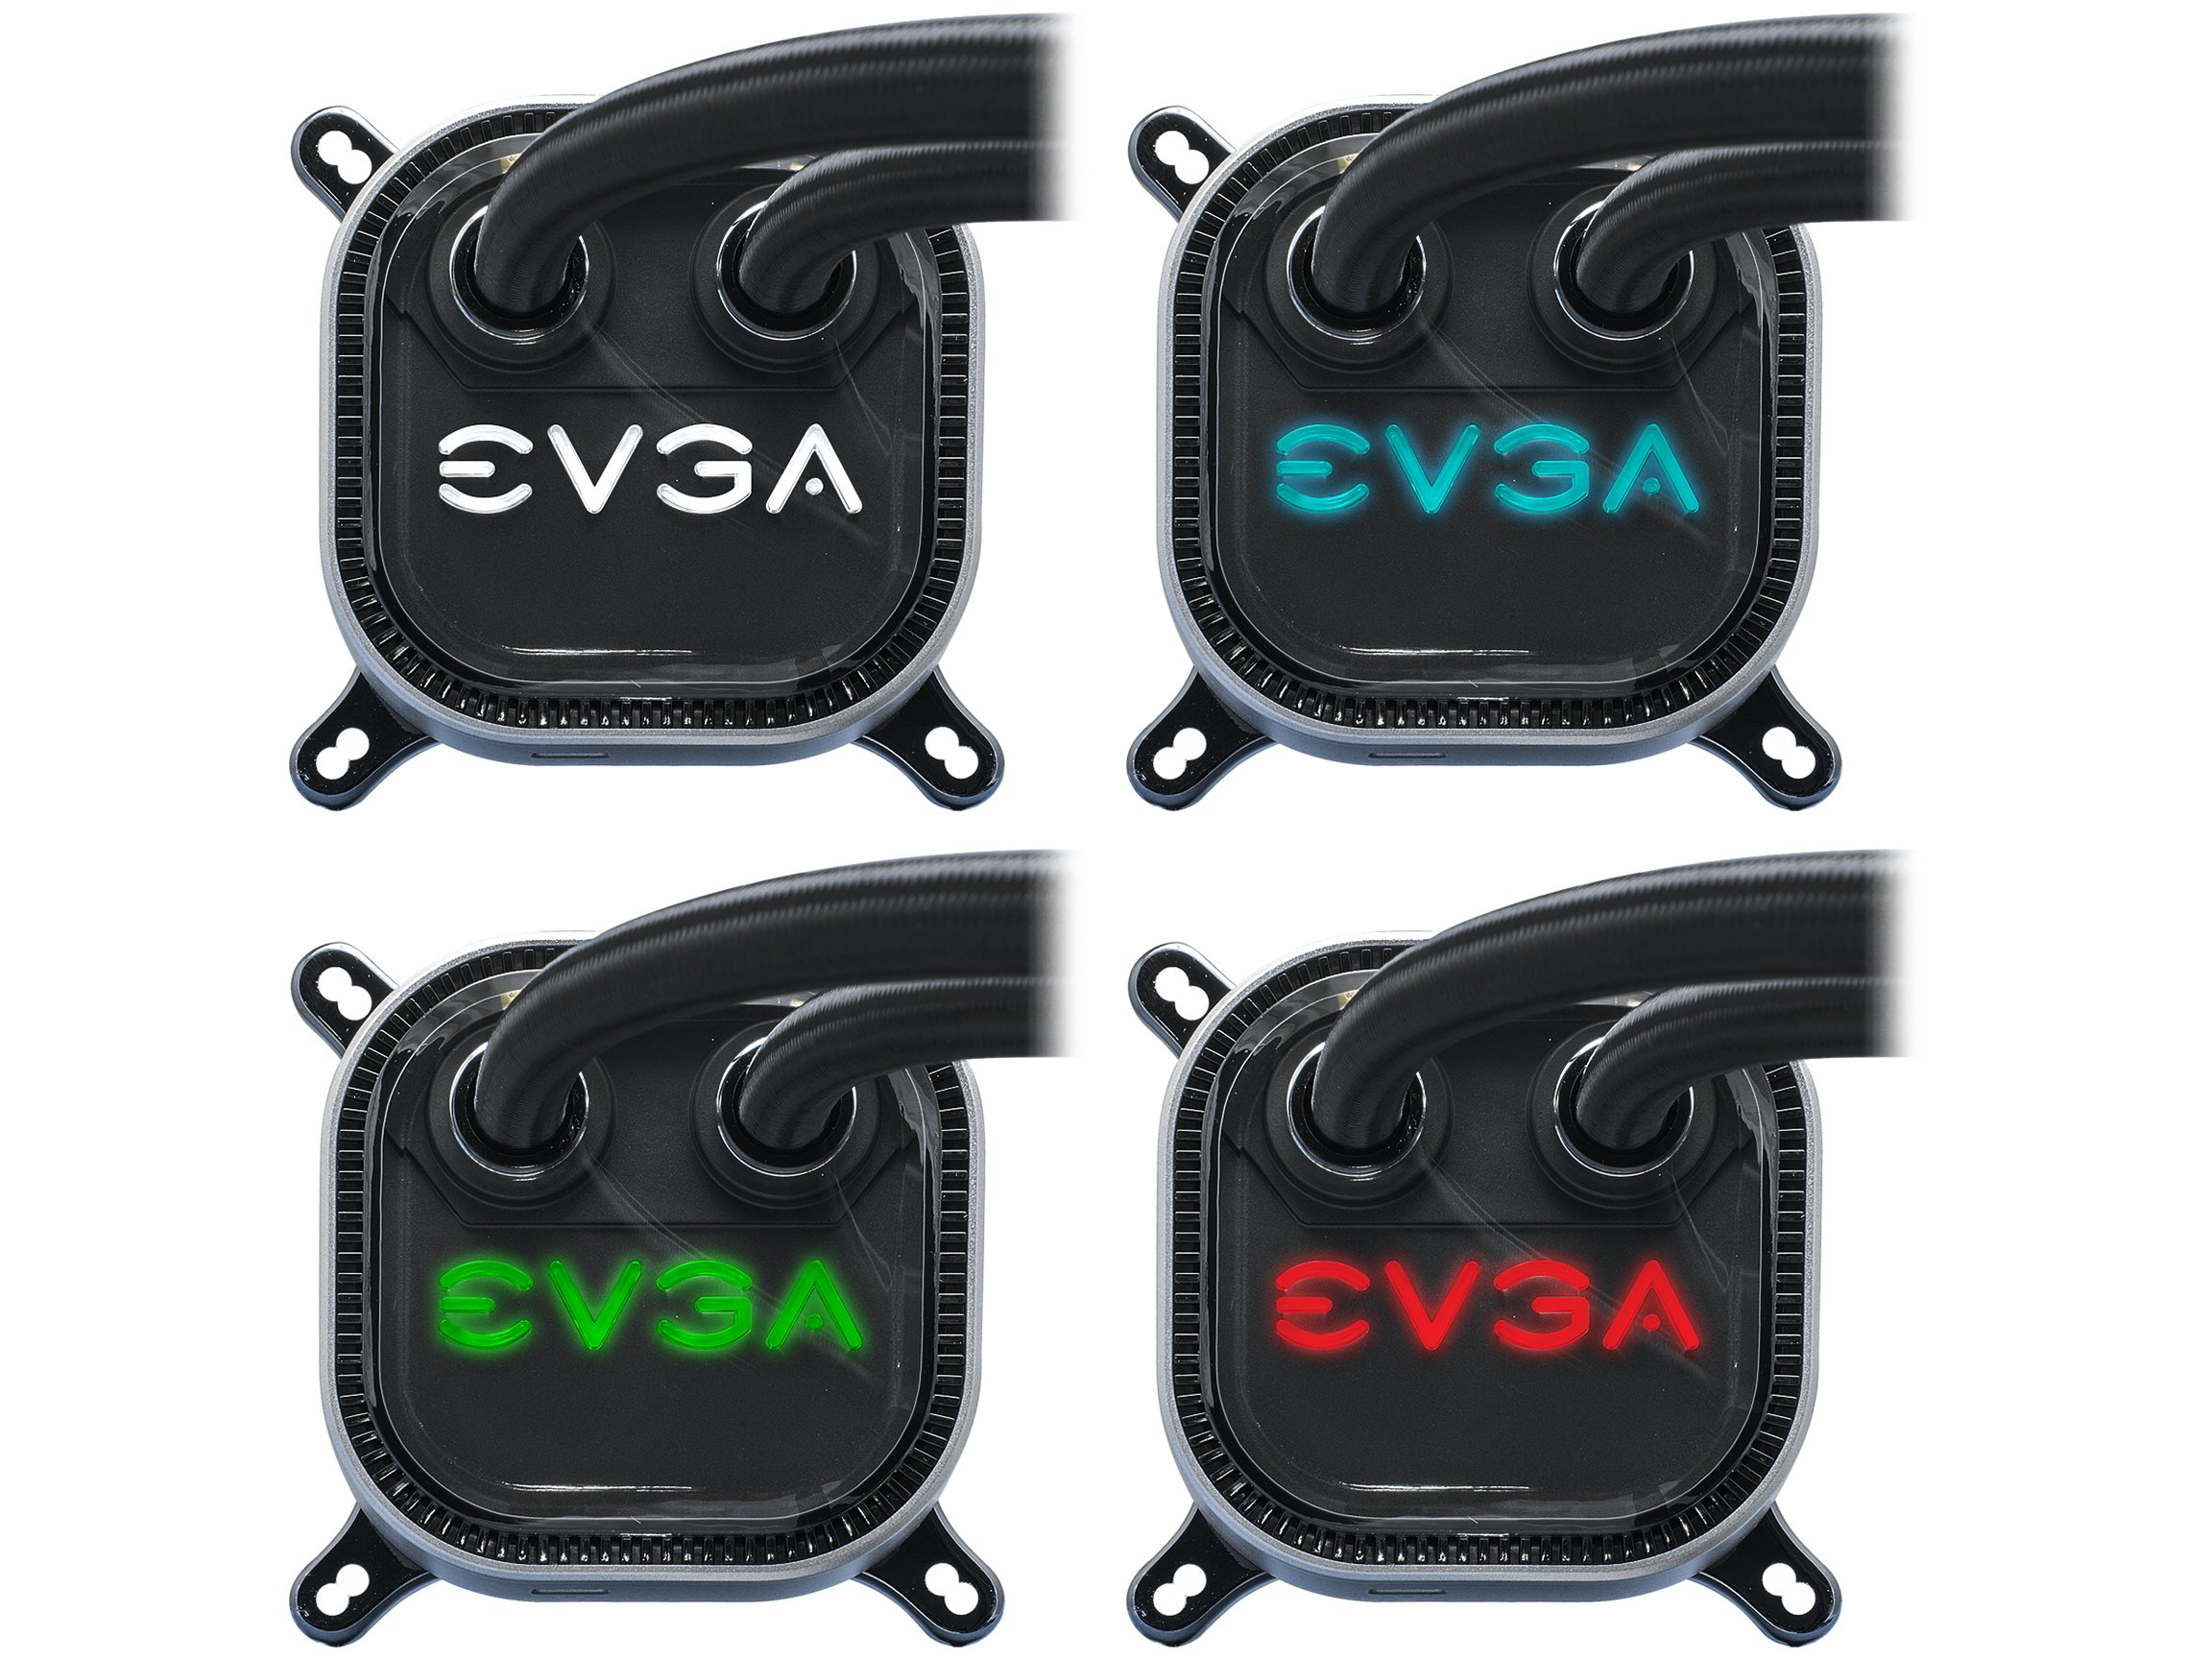 EVGA CLC 240 Liquid/Water CPU Cooler, RGB LED Cooling 400-HY-CL24-V1 by EVGA (Image #2)